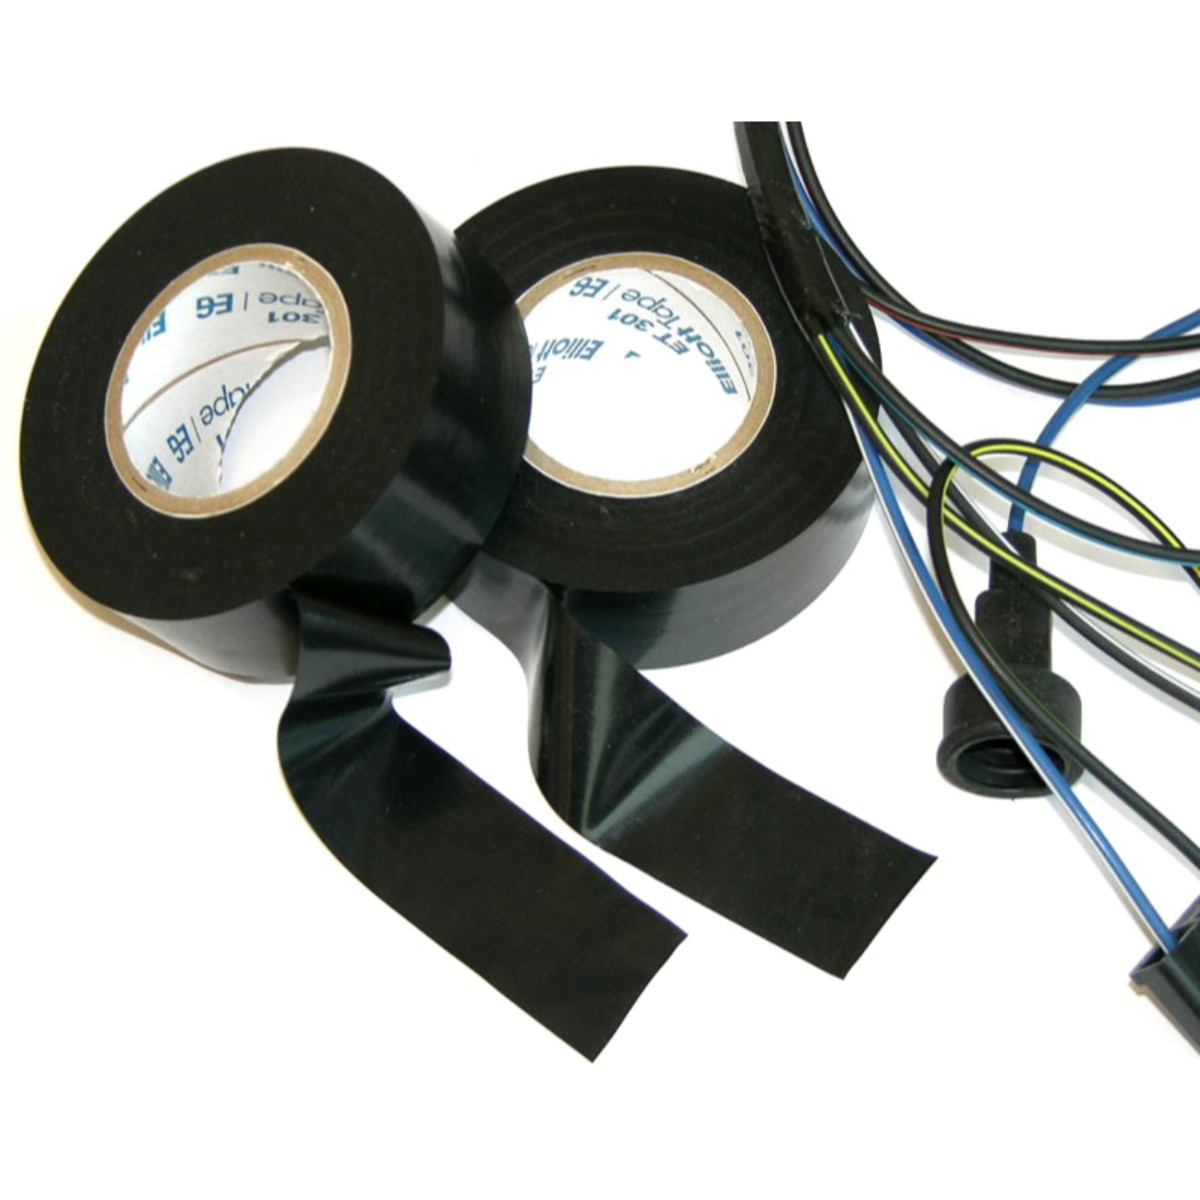 Gm Wiring Harness Tape - Wiring Diagram Operations on hose tape, wheel tape, tail light tape, muffler tape, wire loom clips, washi tape,